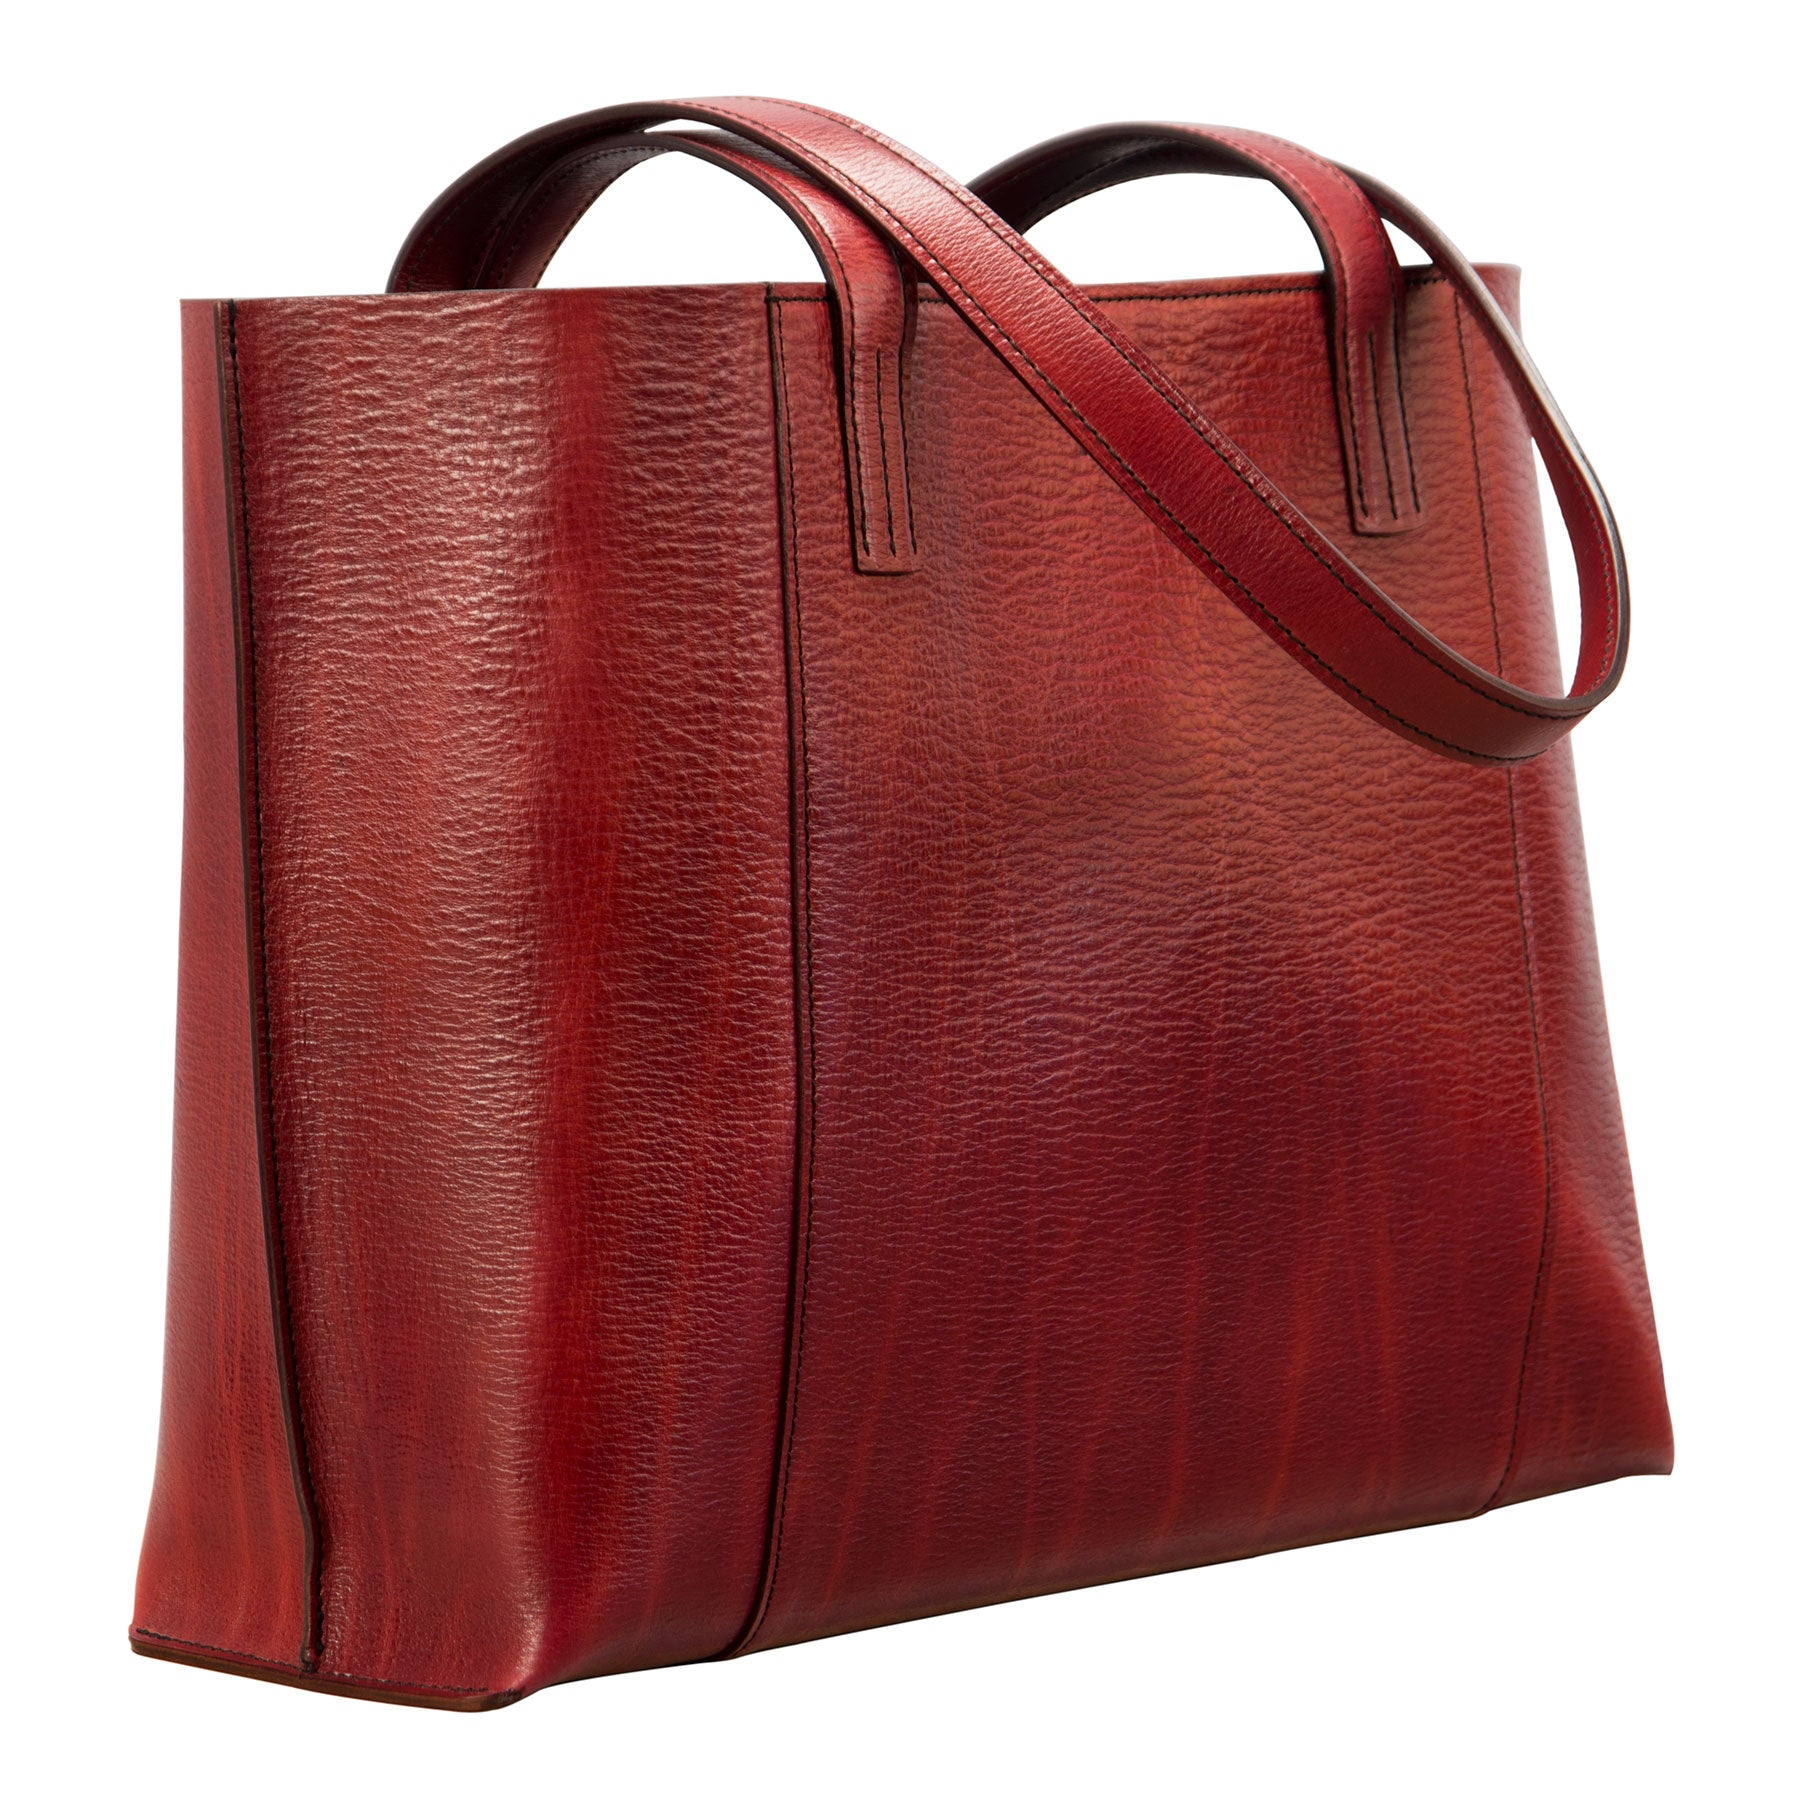 Glaser Designs Ellie Tote. Hand colored Barn Red vegetable tanned leather. Made to-measure, custom sizes.